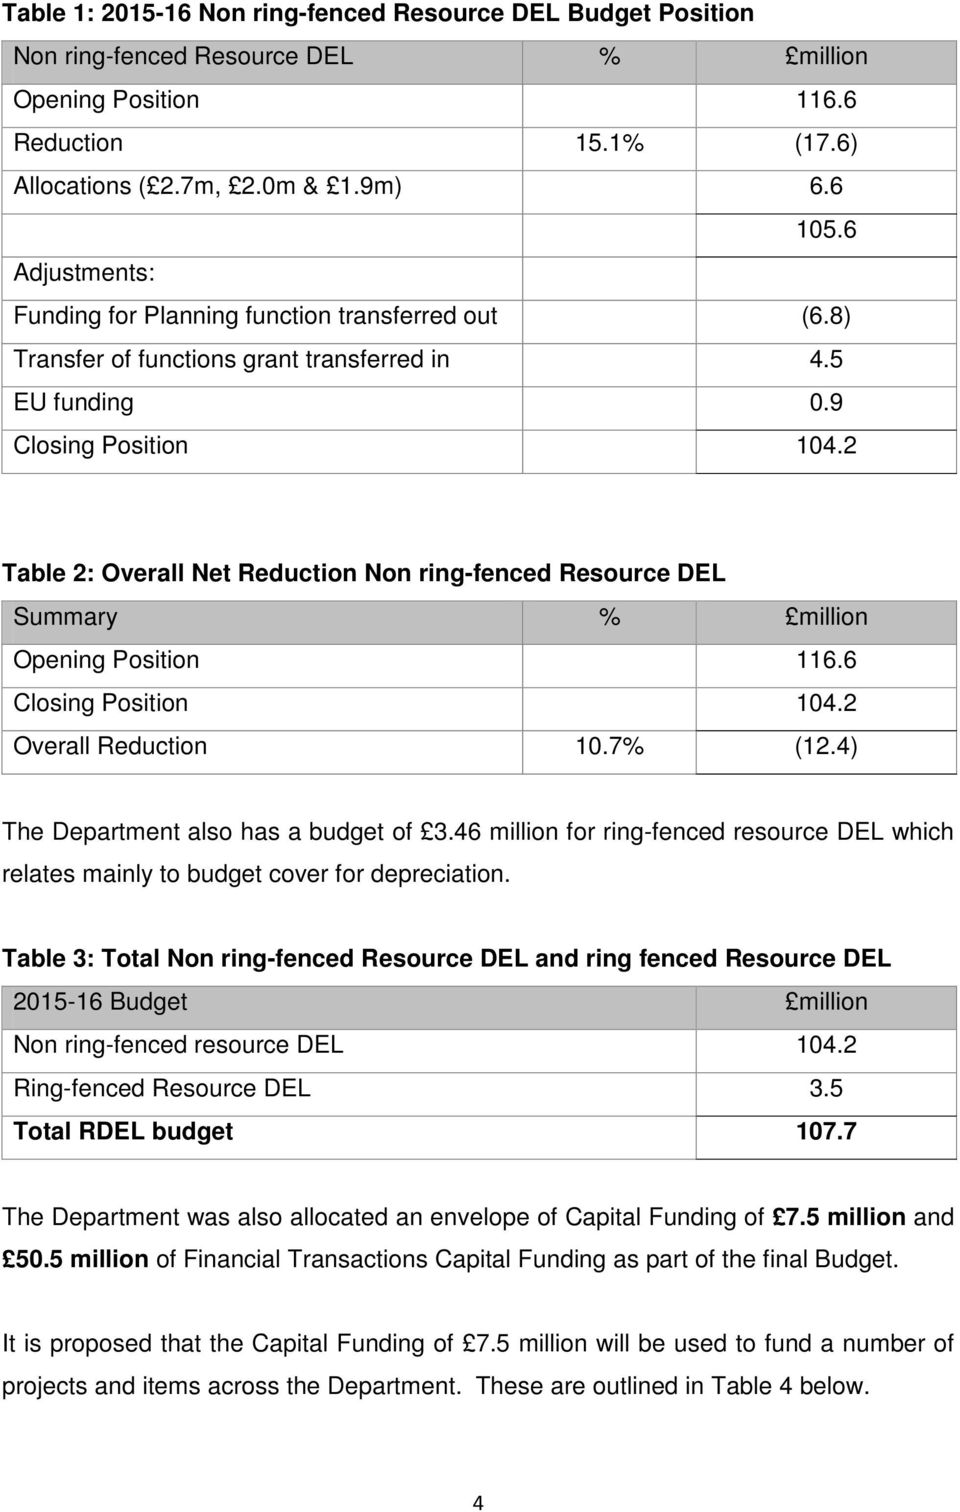 2 Table 2: Overall Net Reduction Non ring-fenced Resource DEL Summary % million Opening Position 116.6 Closing Position 104.2 Overall Reduction 10.7% (12.4) The Department also has a budget of 3.